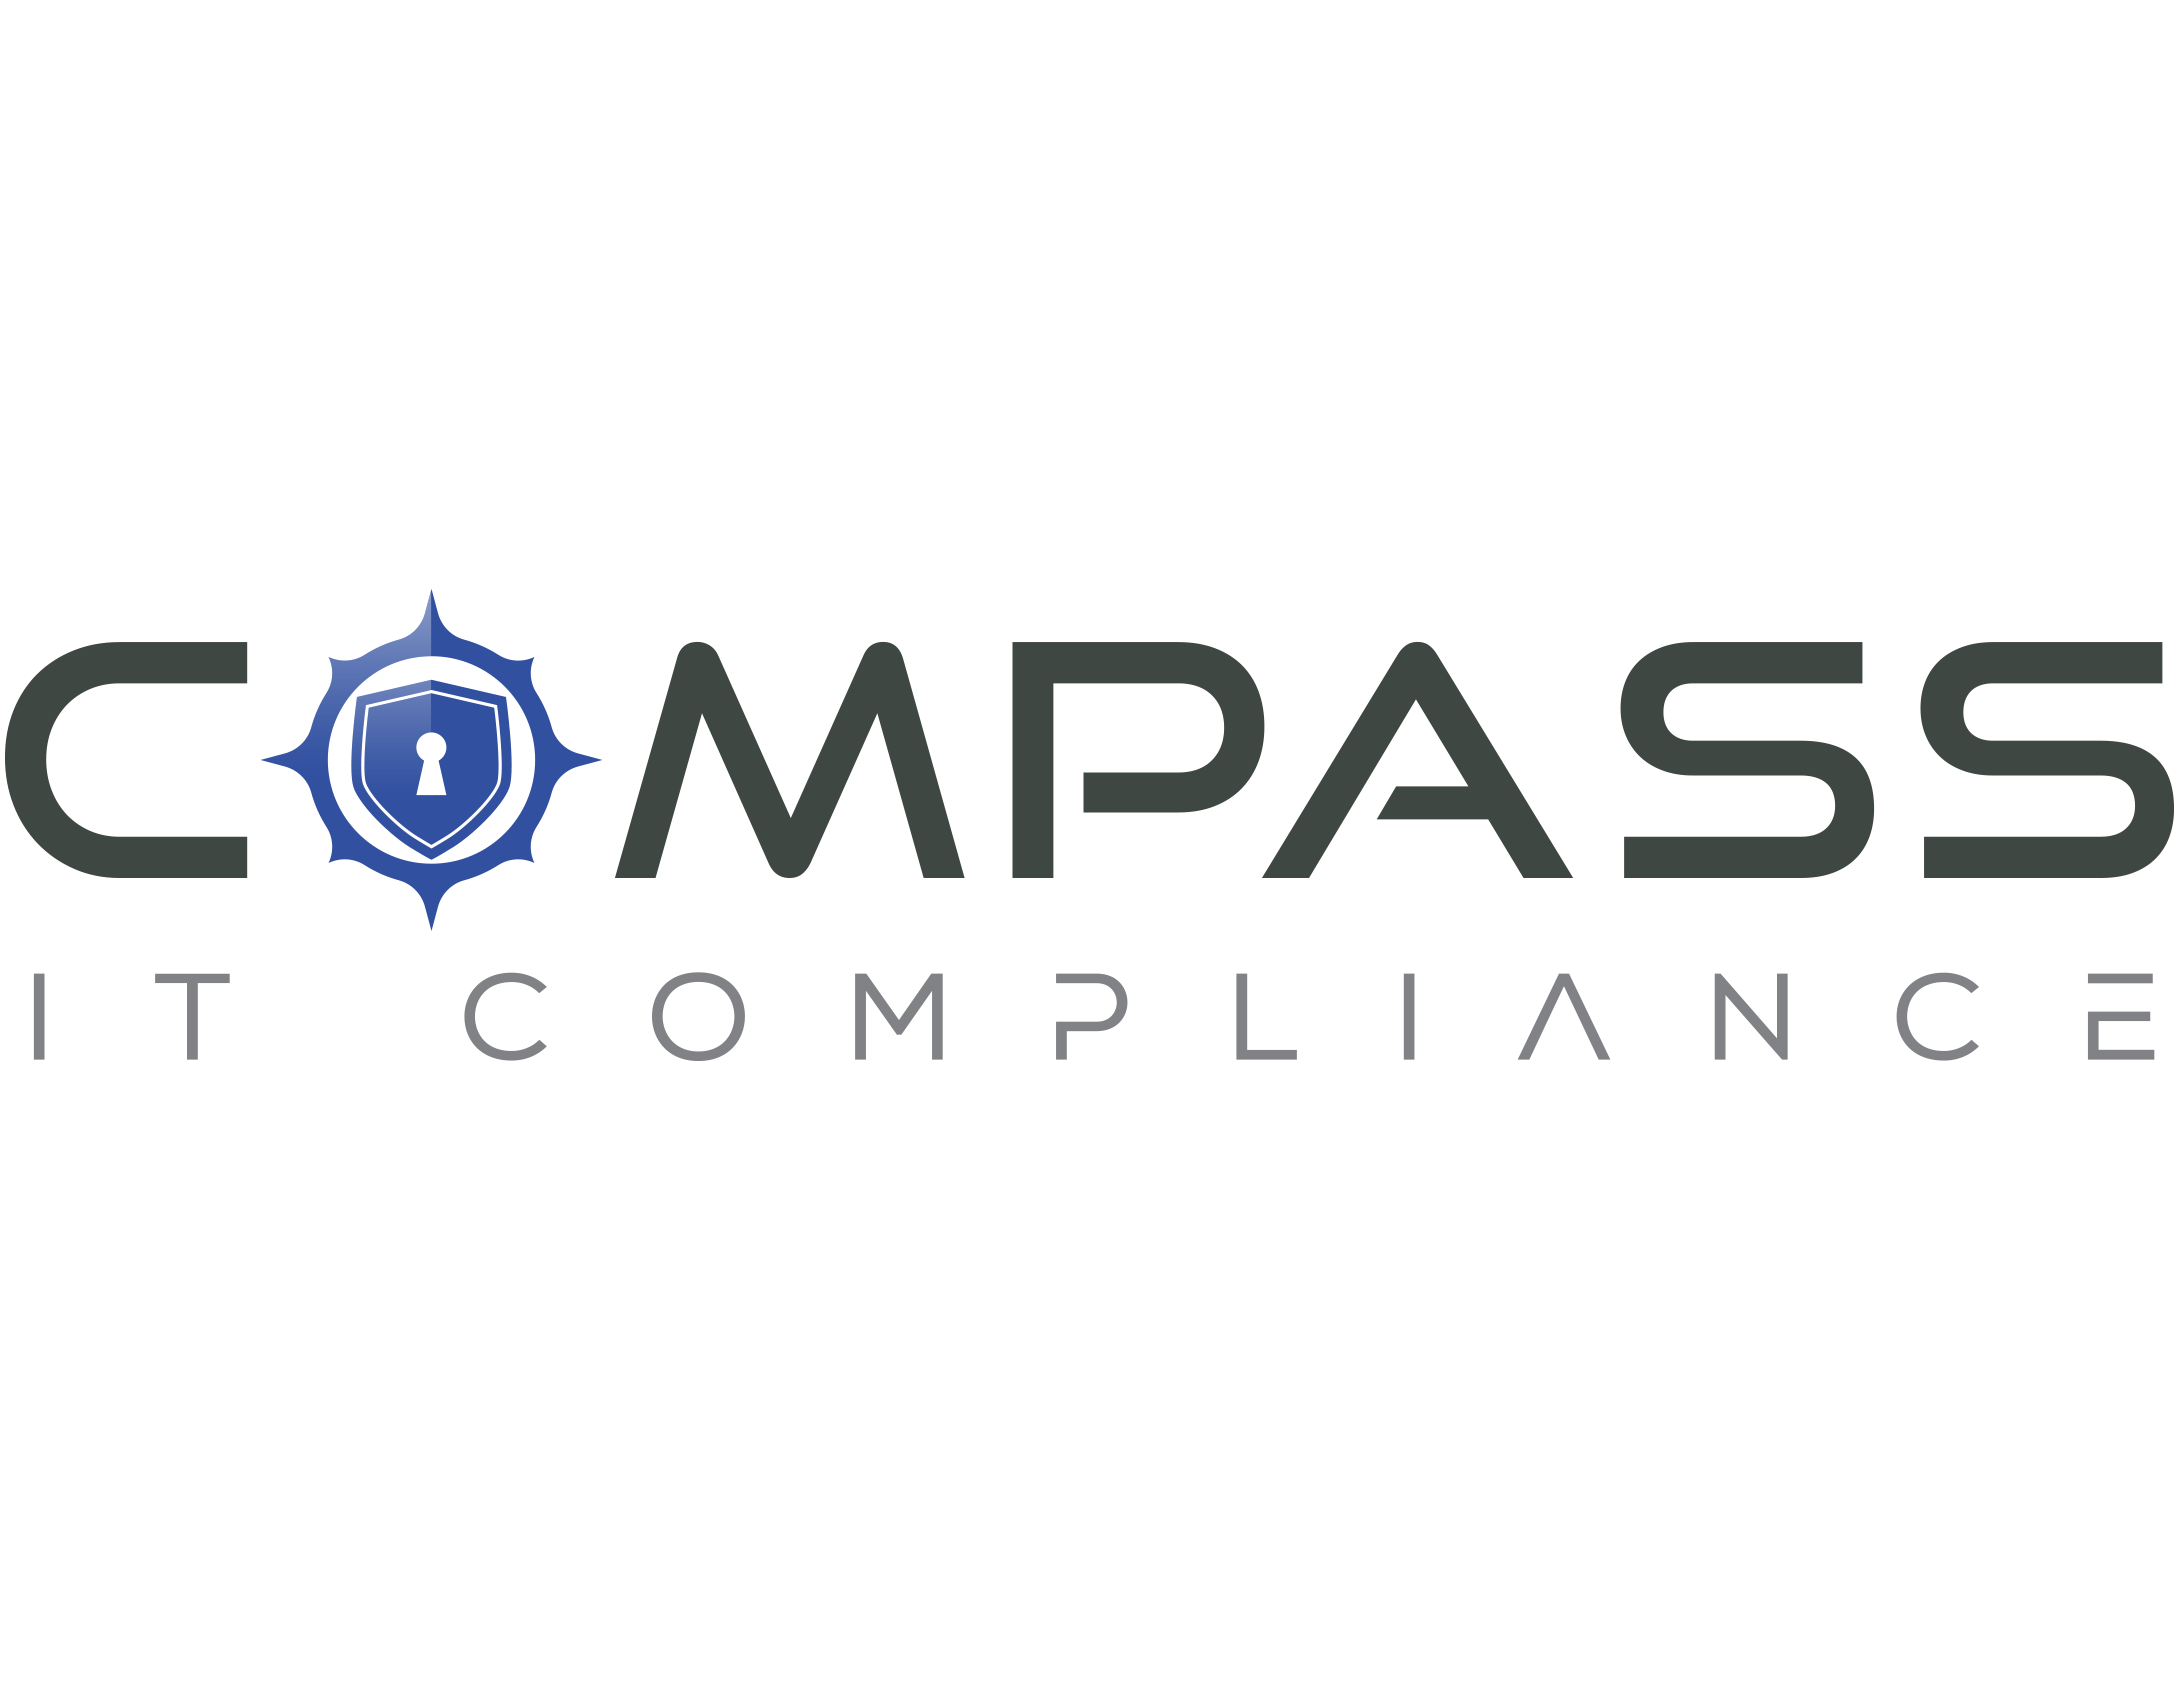 101 Compass (DBA) – Compass IT Compliance, LLC.